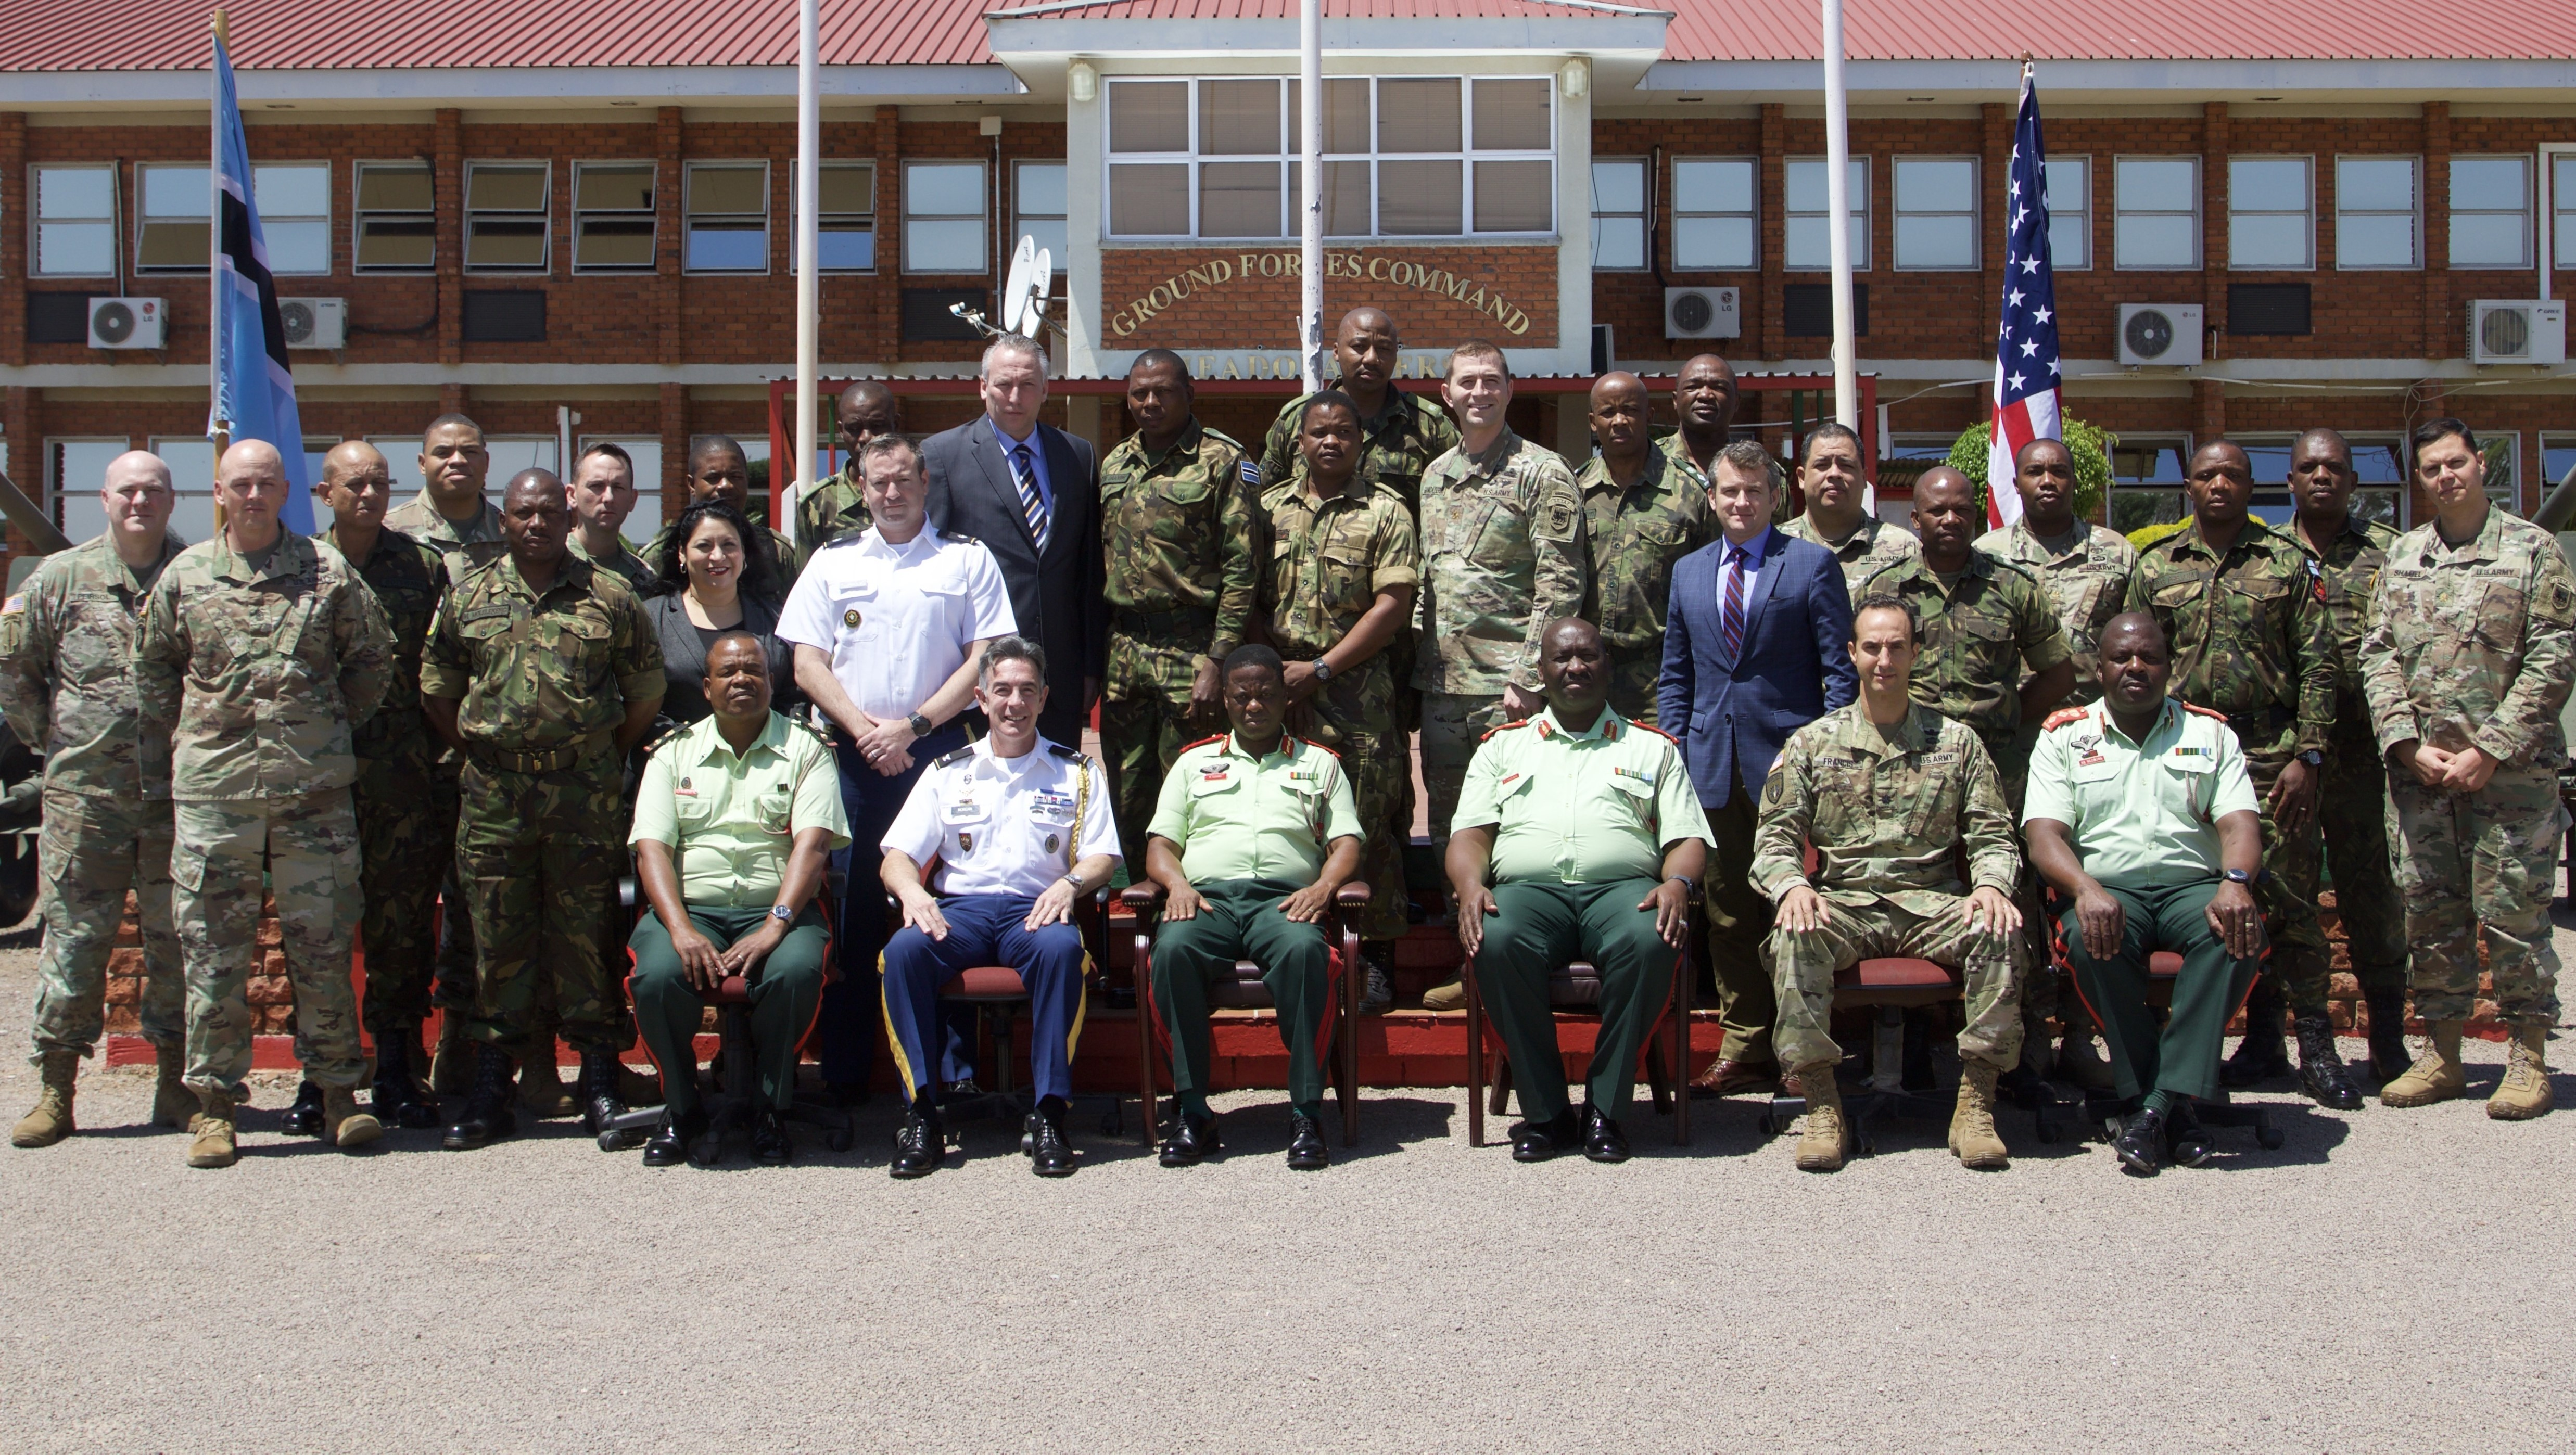 Lead planners from U.S. Army Africa and the Botswana Ground Forces take a group photo in front of the Botswana GFC headquarters Oct. 26, 2018, to signify the conclusion of the first planning event for the 2019 African Land Forces Summit 19. 